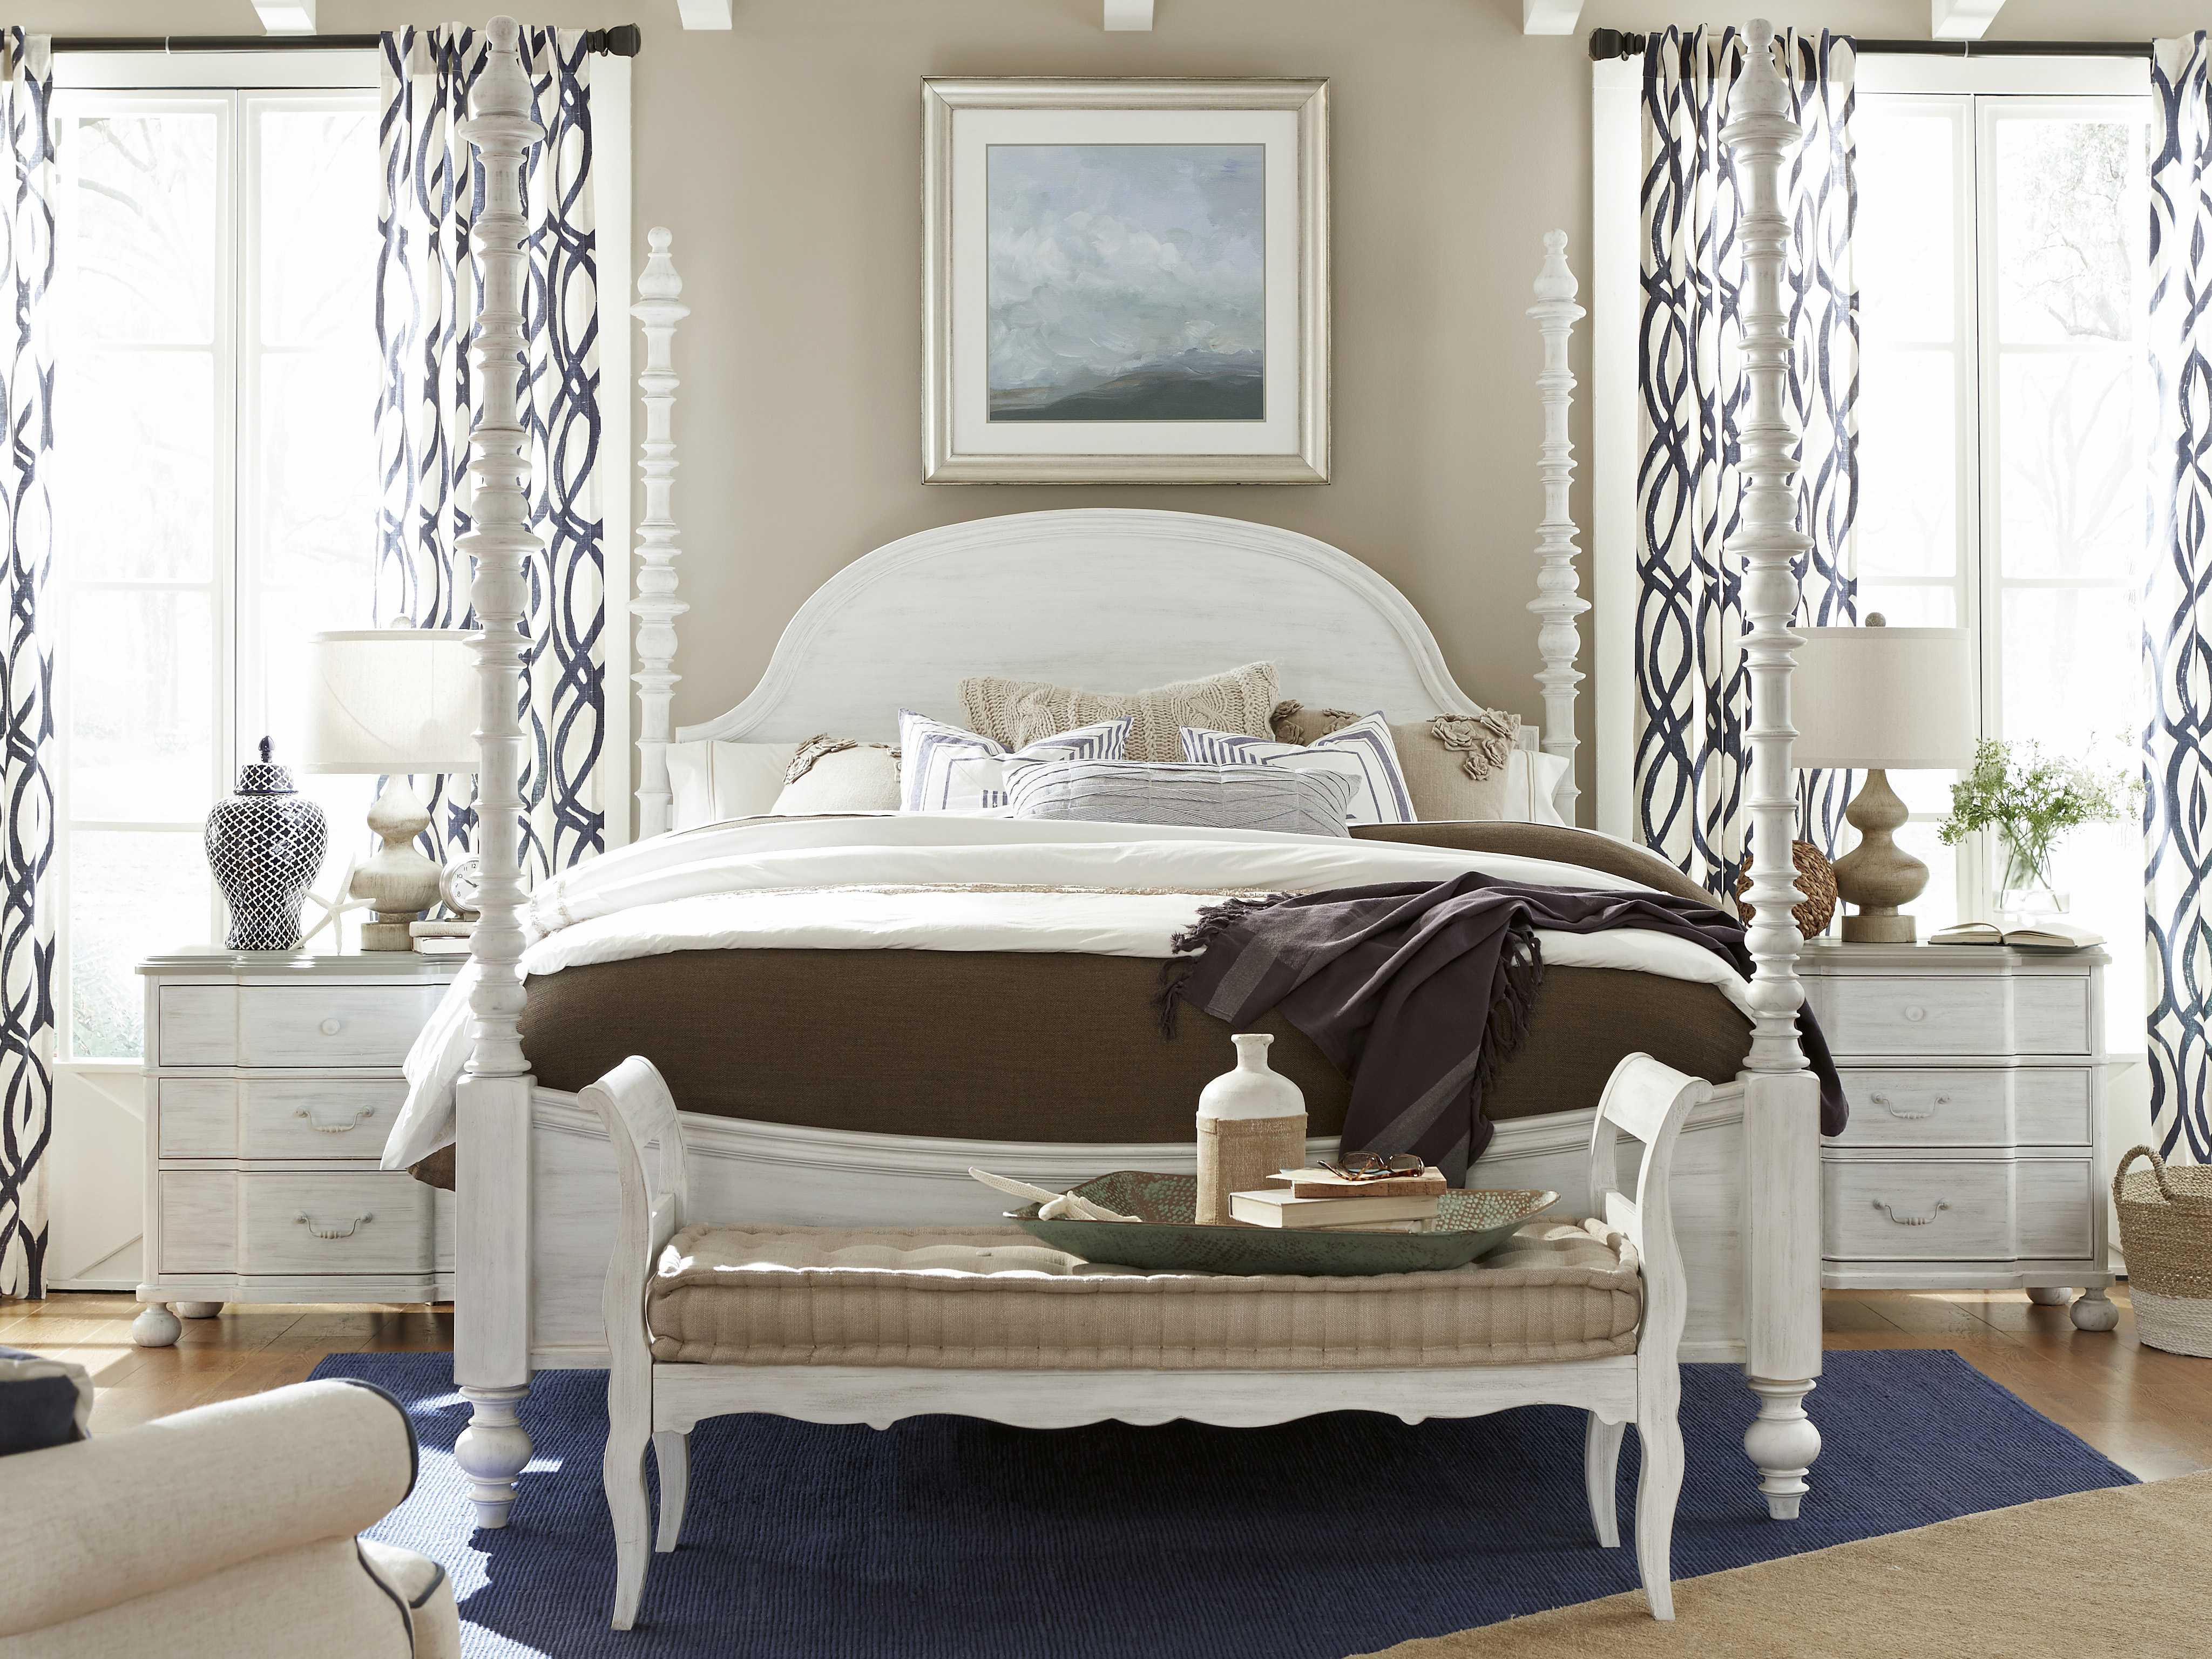 Paula deen home dogwood blossom poster bed bedroom set - Paula deen bedroom furniture collection ...